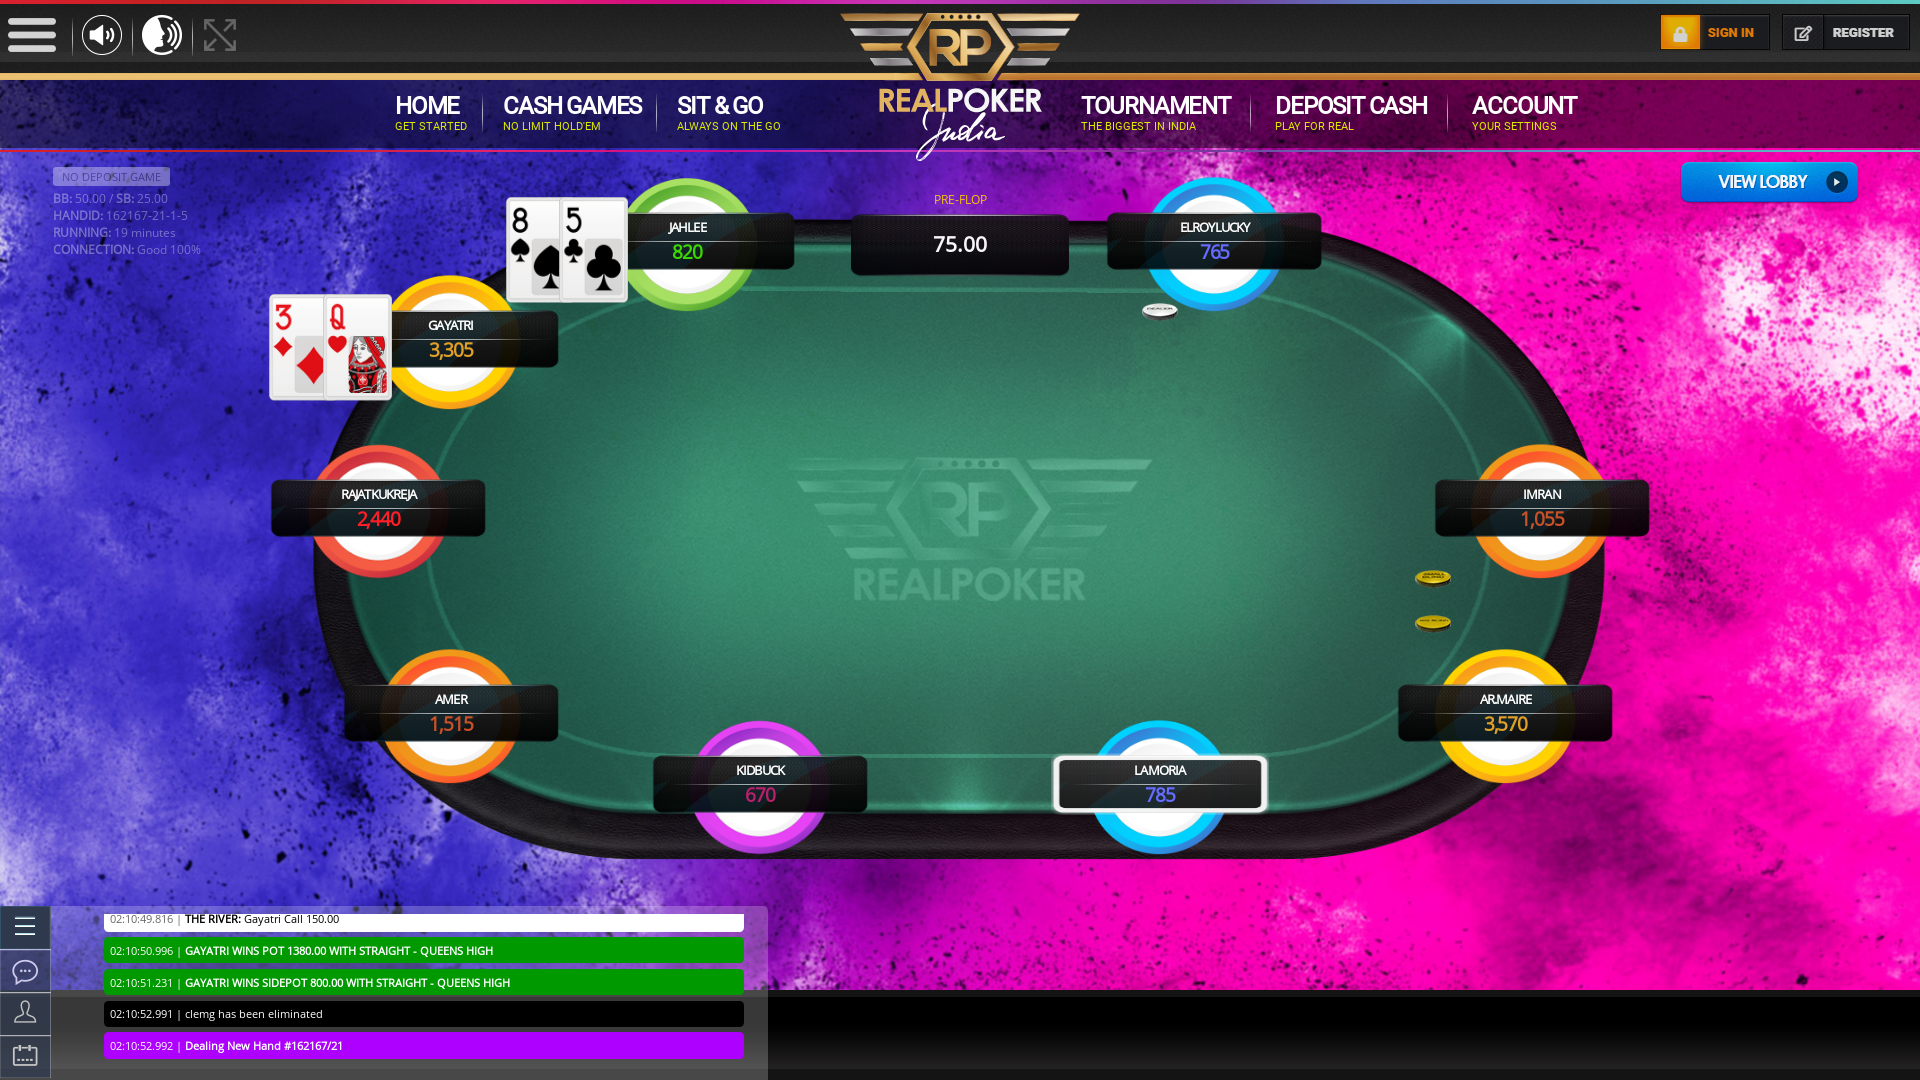 Gangtok Online Poker from 3rd August